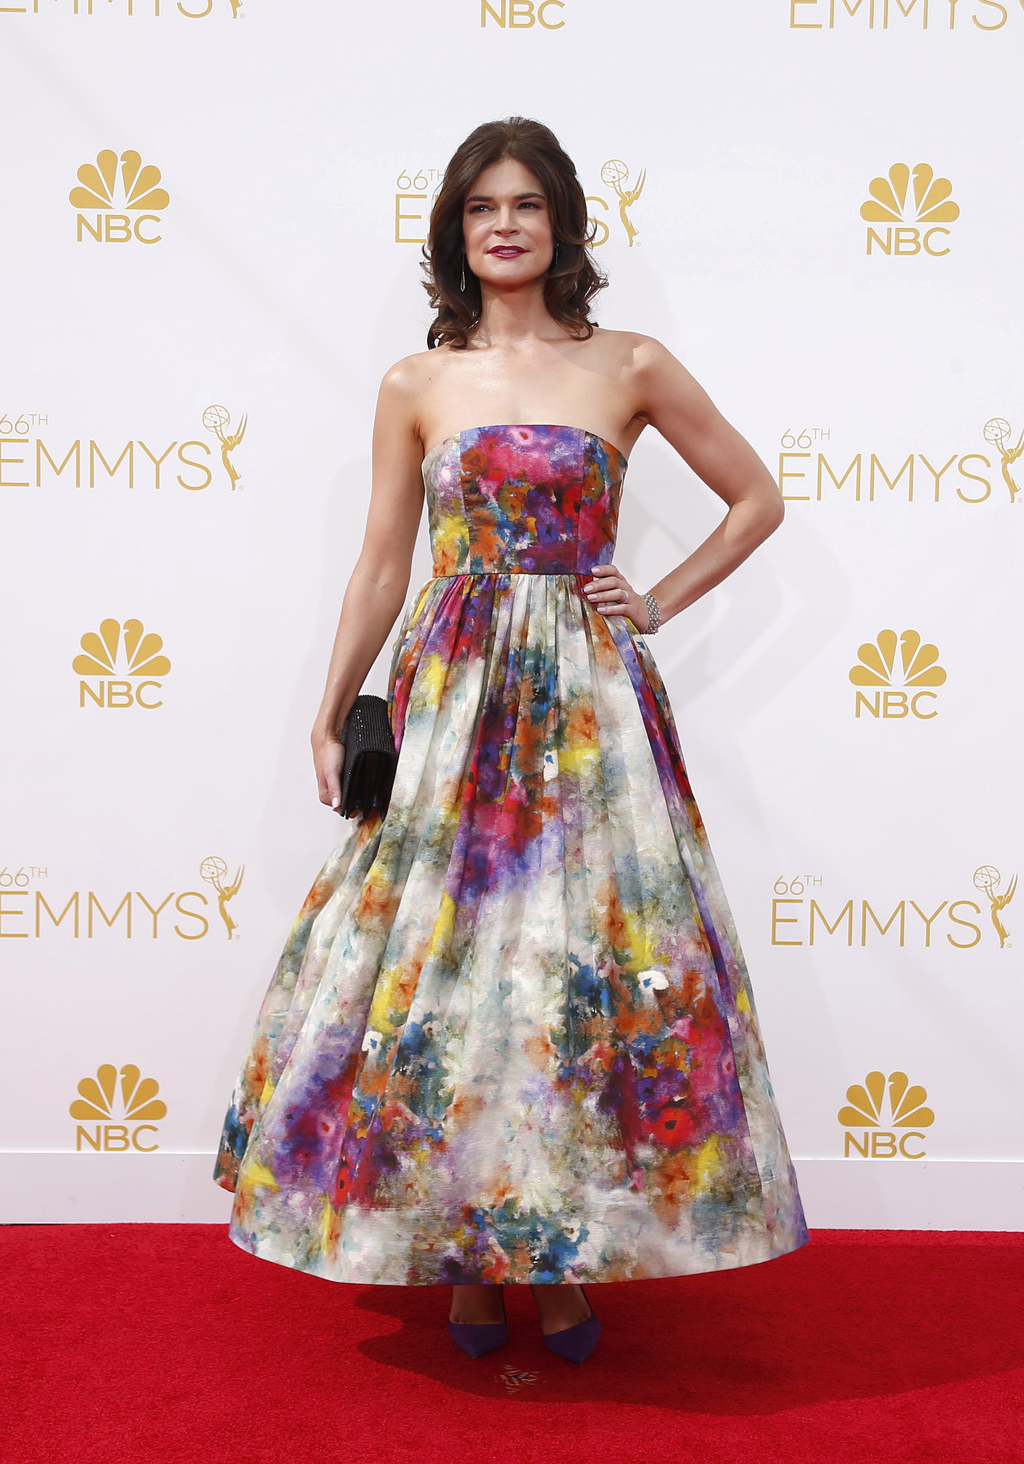 Betsy Brandt arrives at the 66th Primetime Emmy Awards in Los Angeles